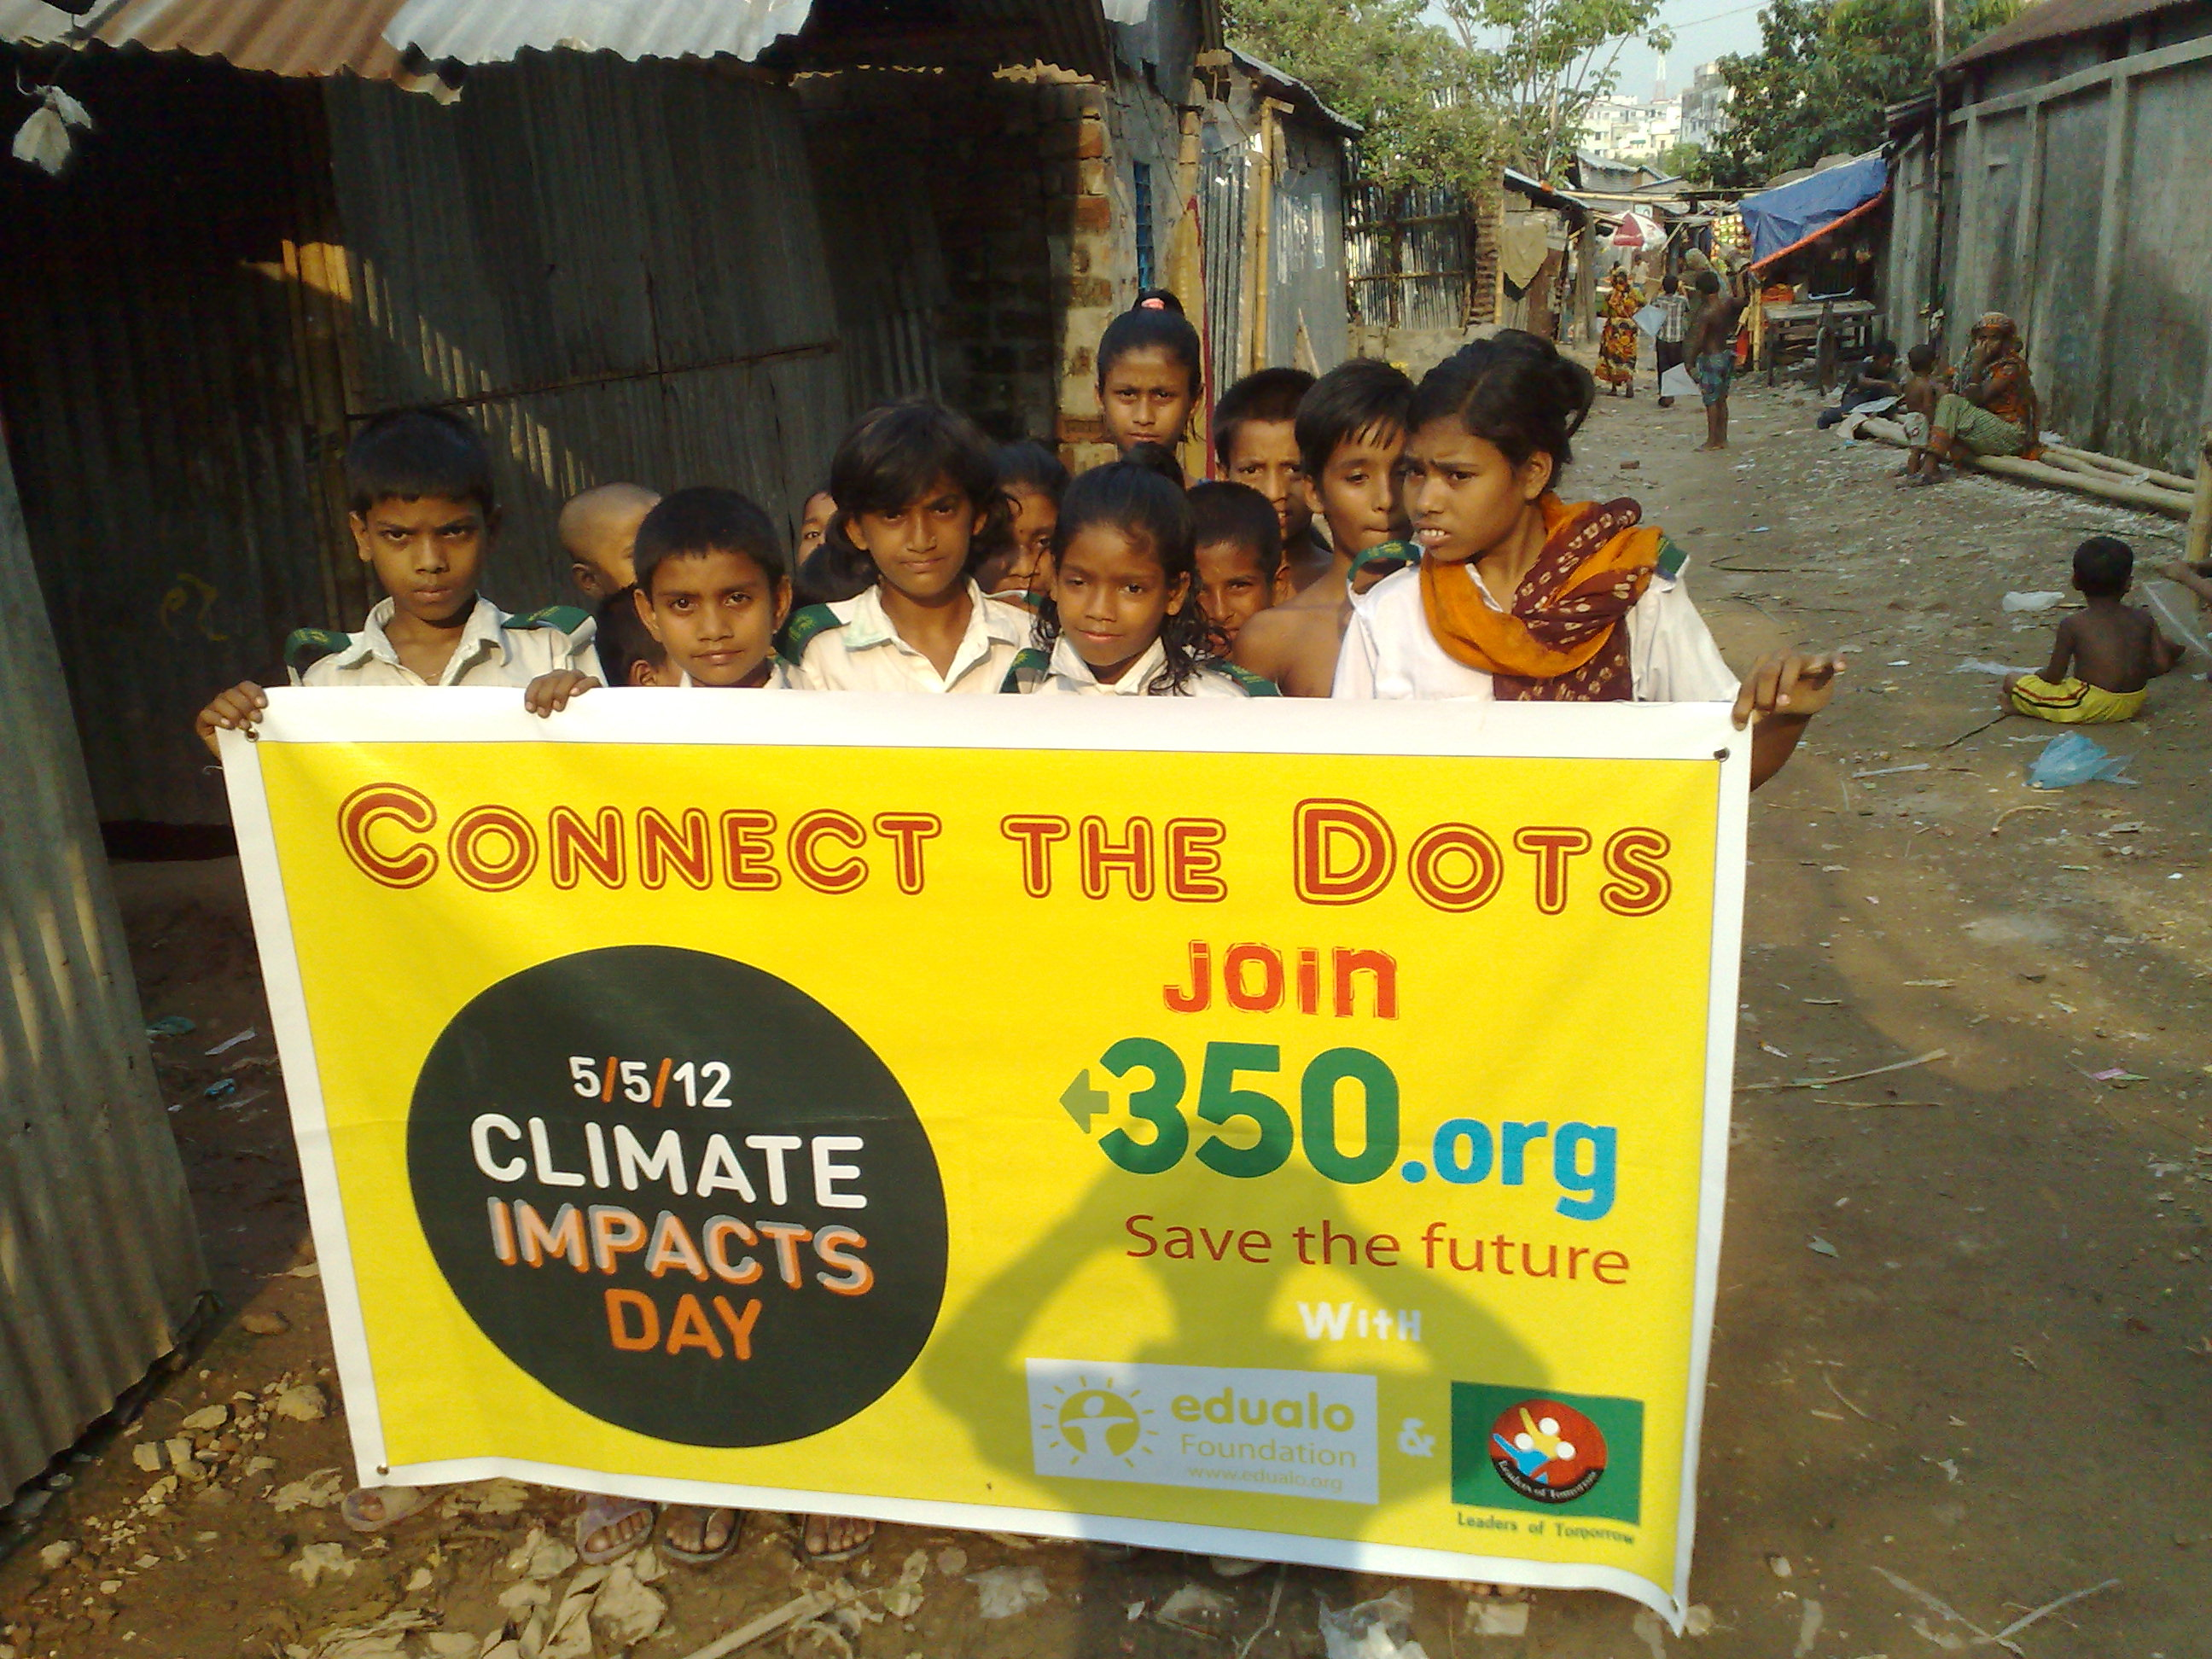 Edualo Connecting dots with 360.org